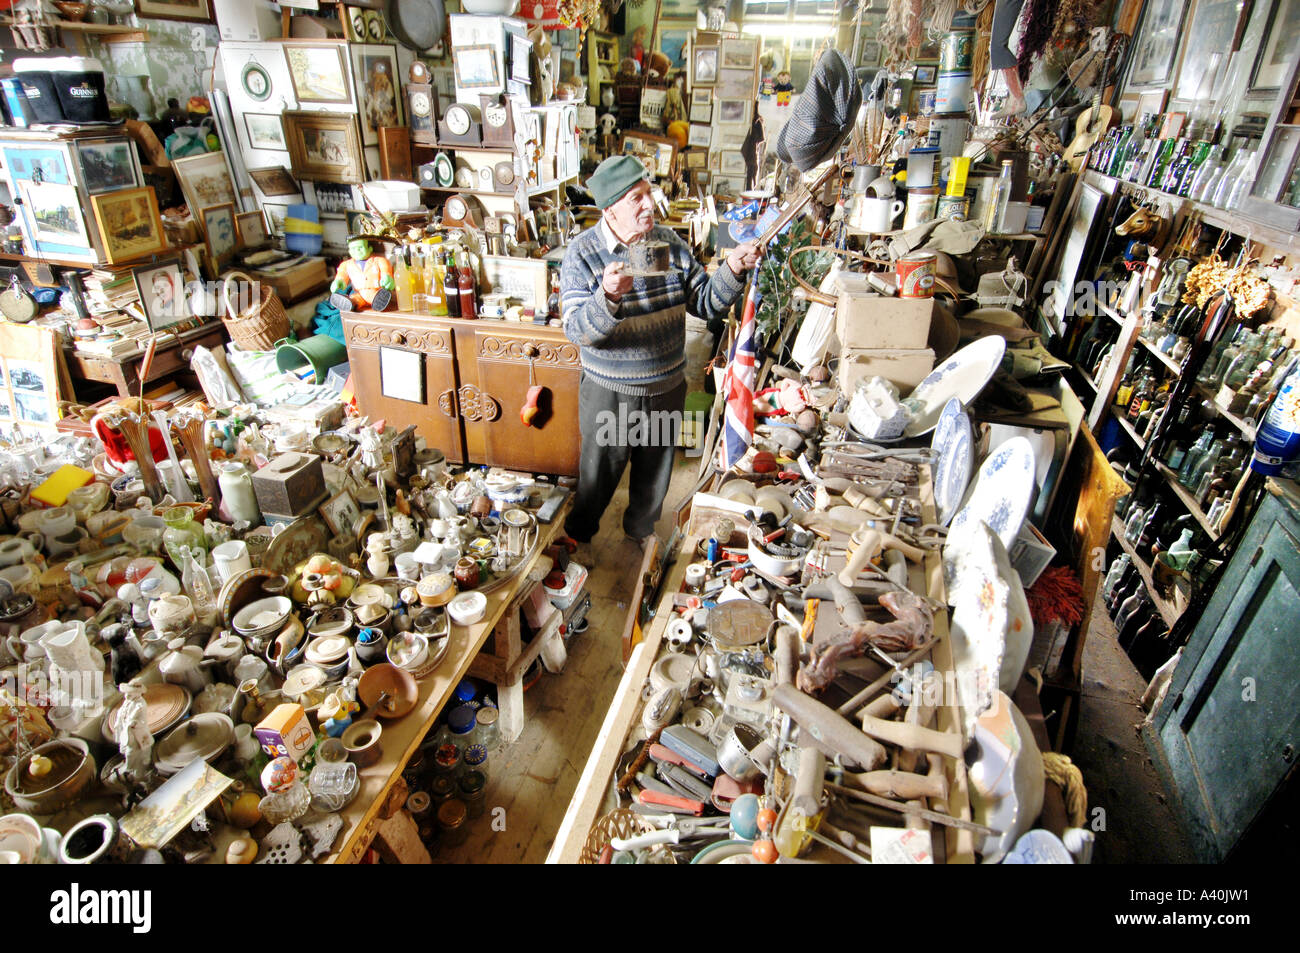 Old man with the thousands of possessions he has hoarded over many decades of never throwing anything away. - Stock Image